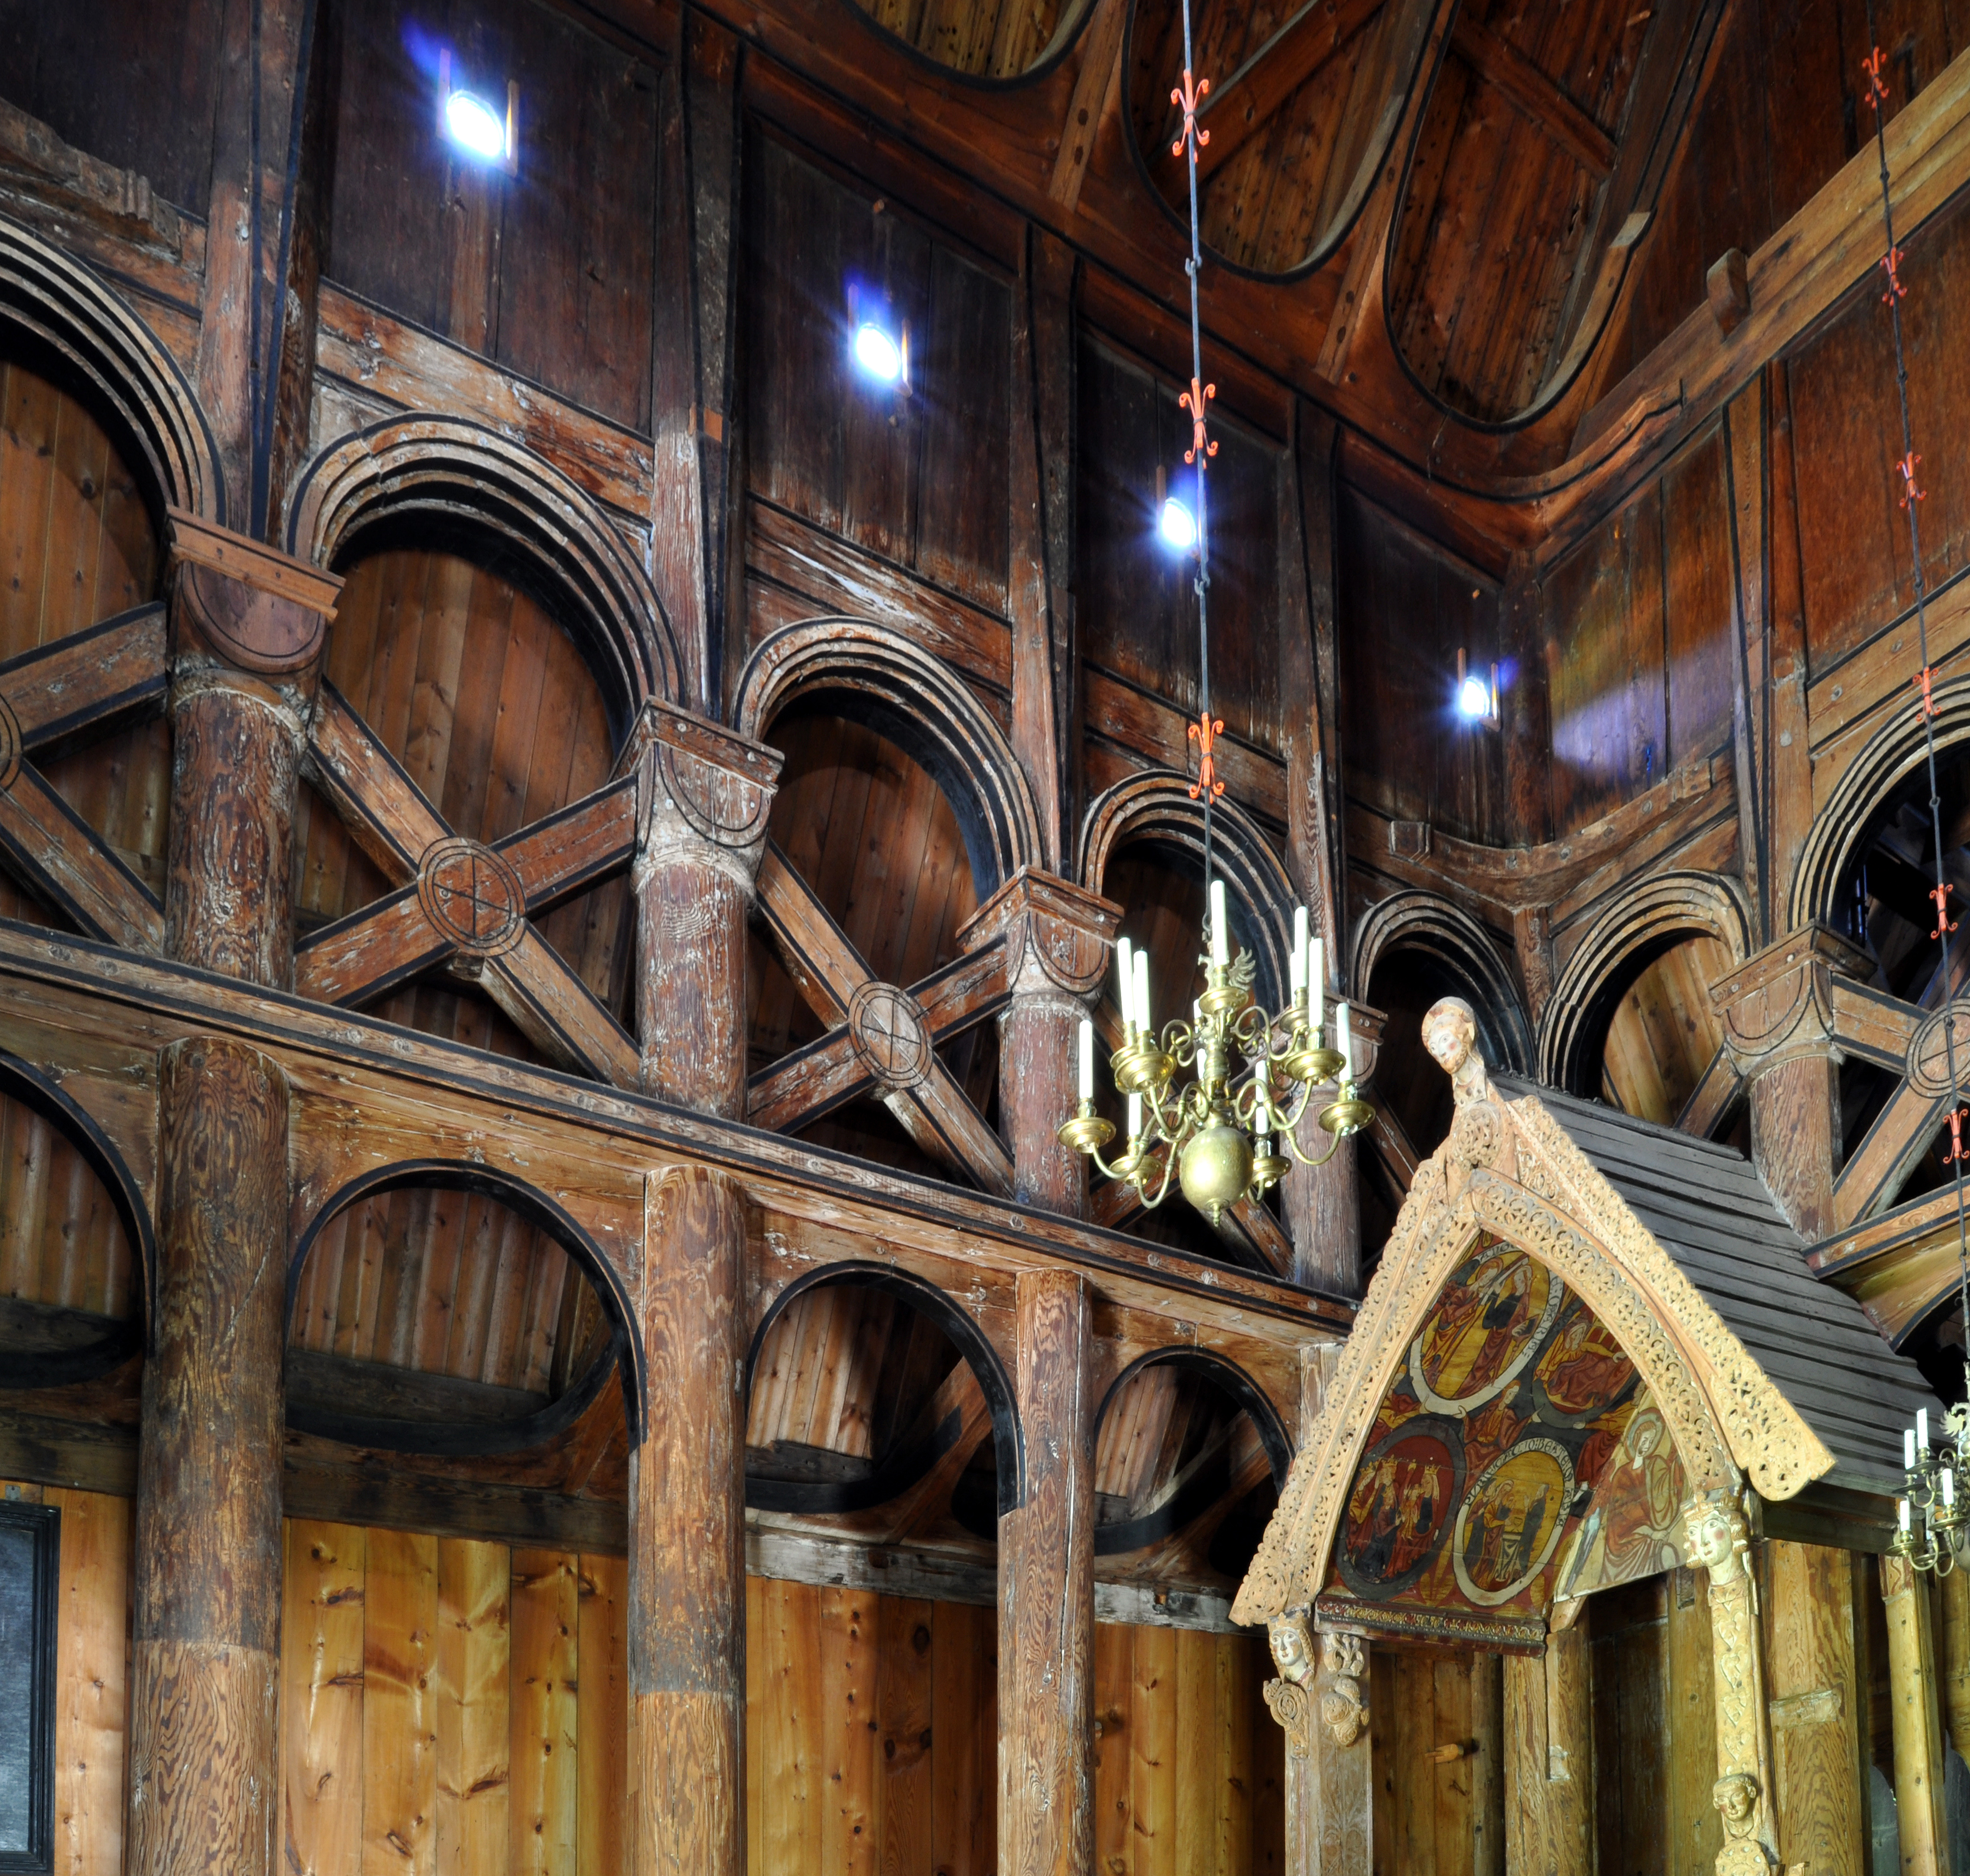 File:Stave church Hopperstad posts constructure.jpg - Wikimedia ...